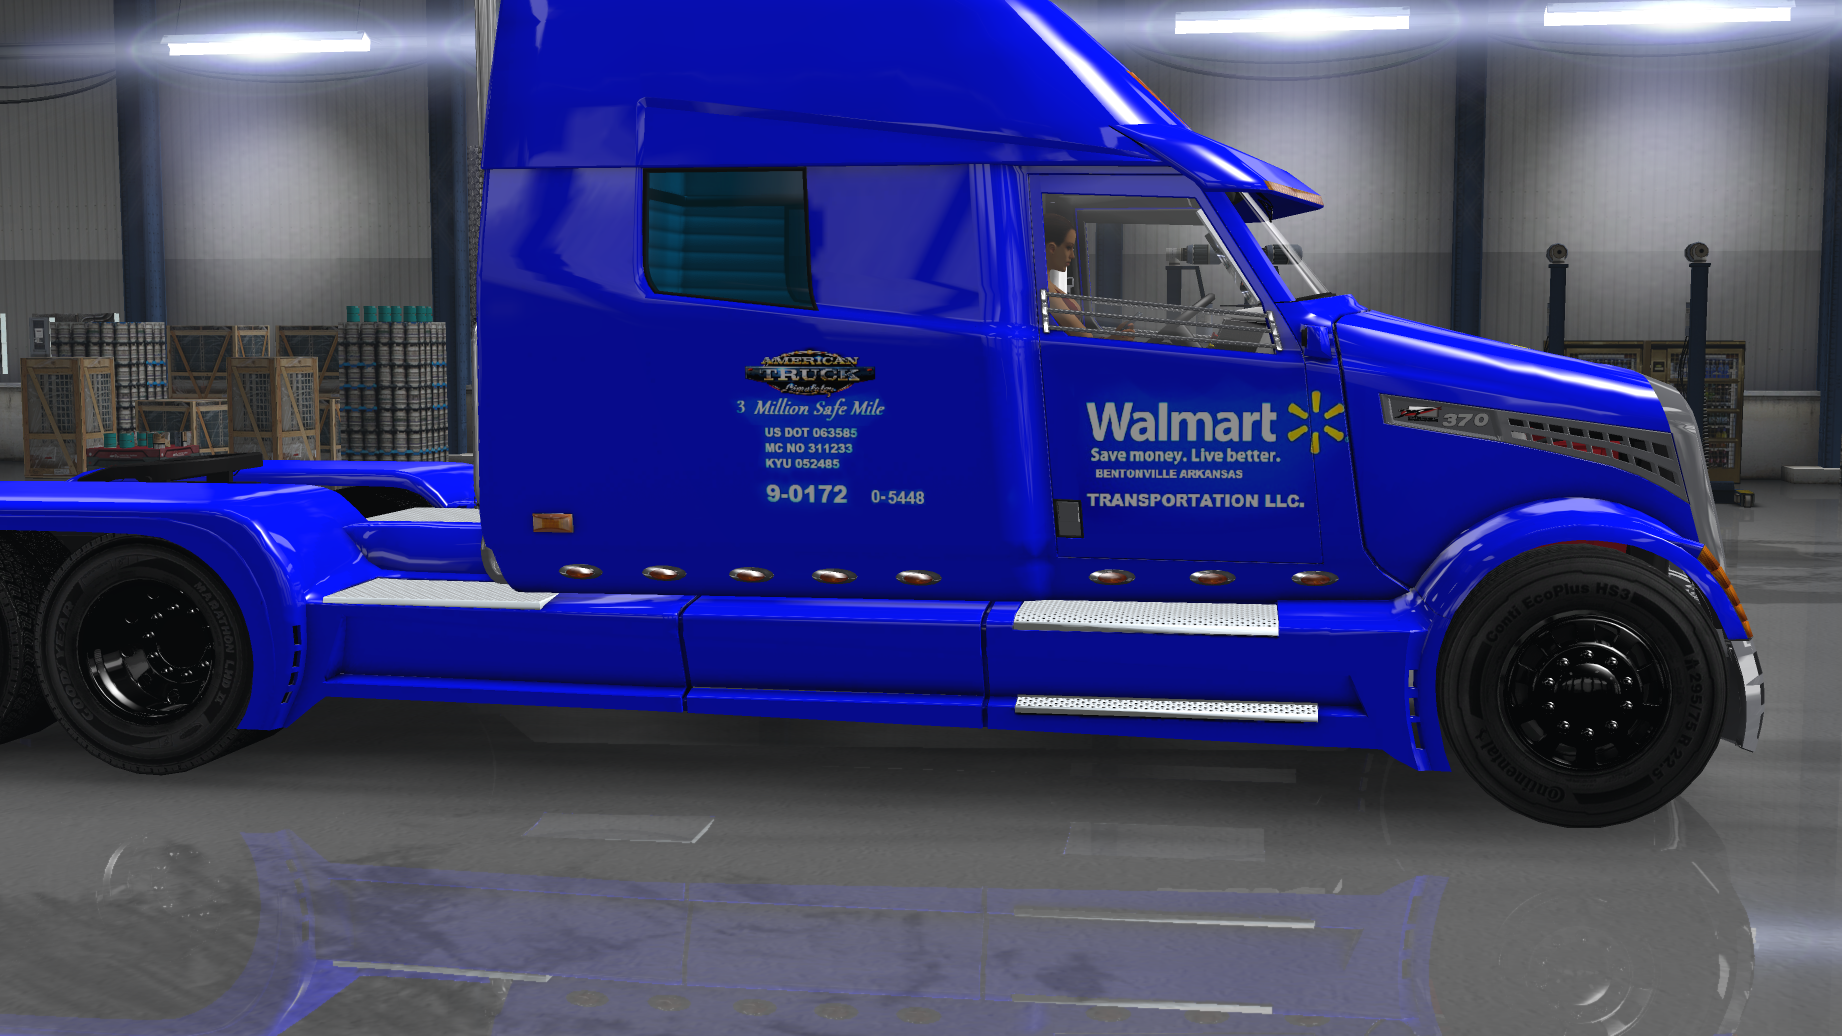 walmart 3 m s m concept 2020 ats mods american truck simulator mods. Black Bedroom Furniture Sets. Home Design Ideas